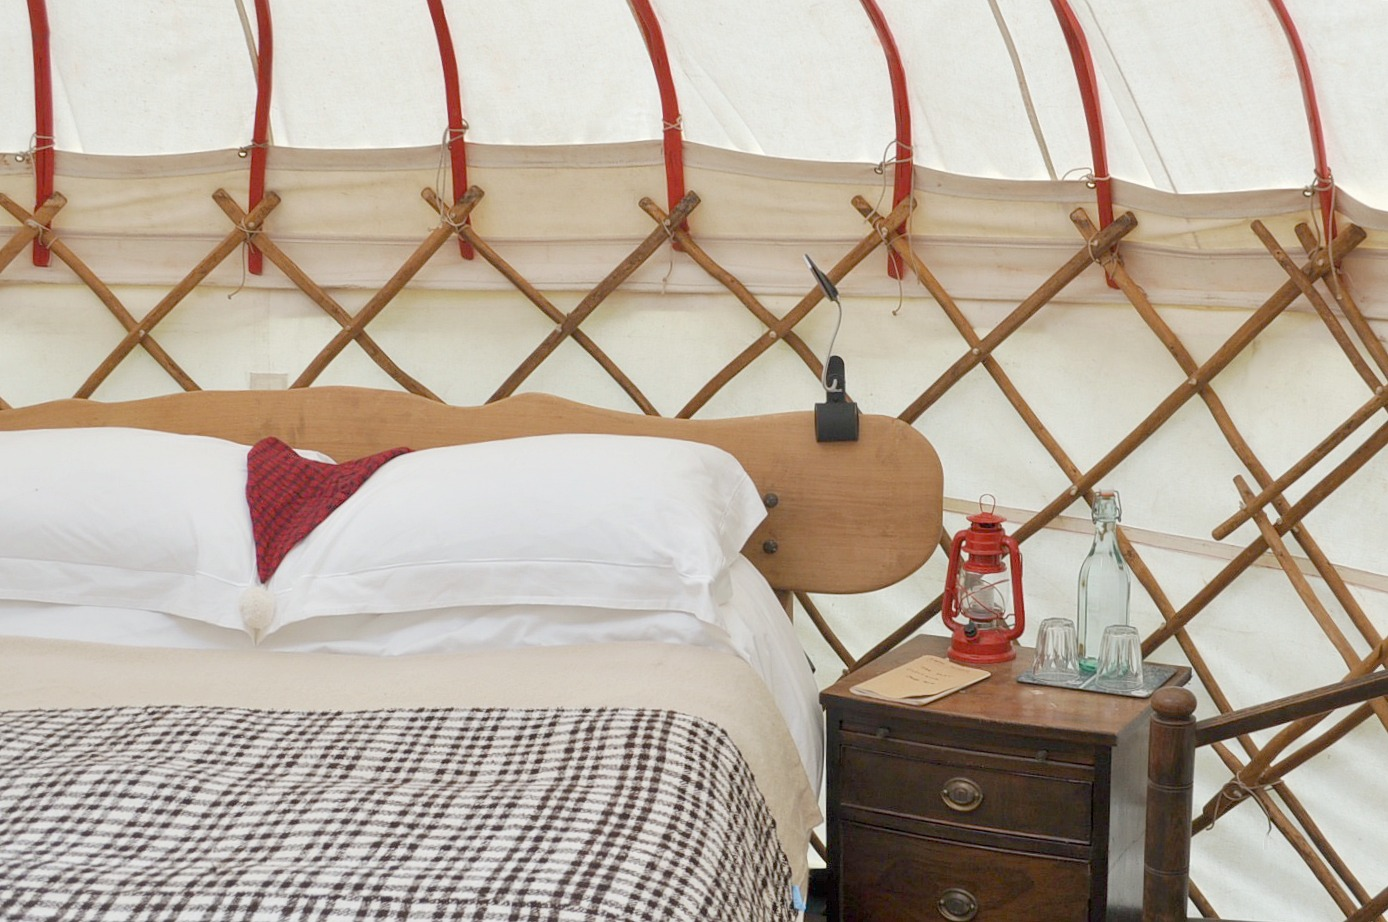 glamping at knepp wildland safari, canopy & Stars